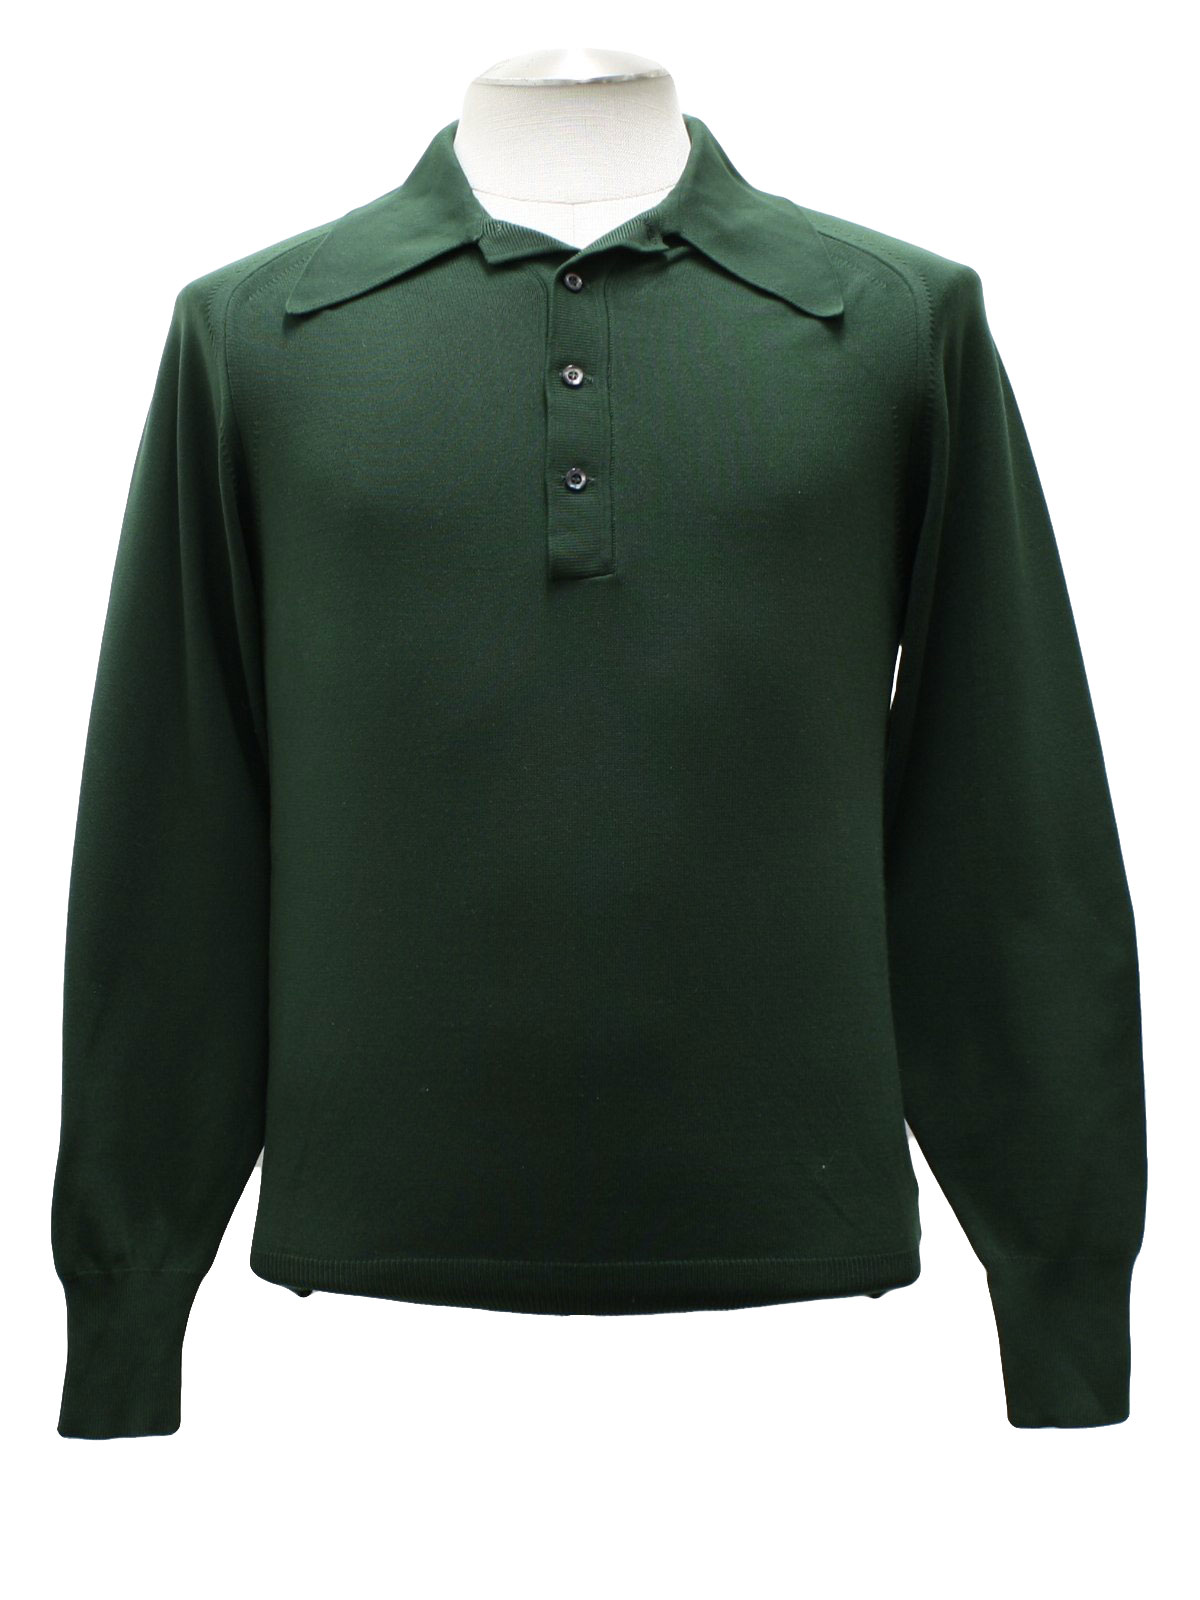 1970s Knit Shirt: 70s Puritan- Mens dark green longsleeve pullover ...